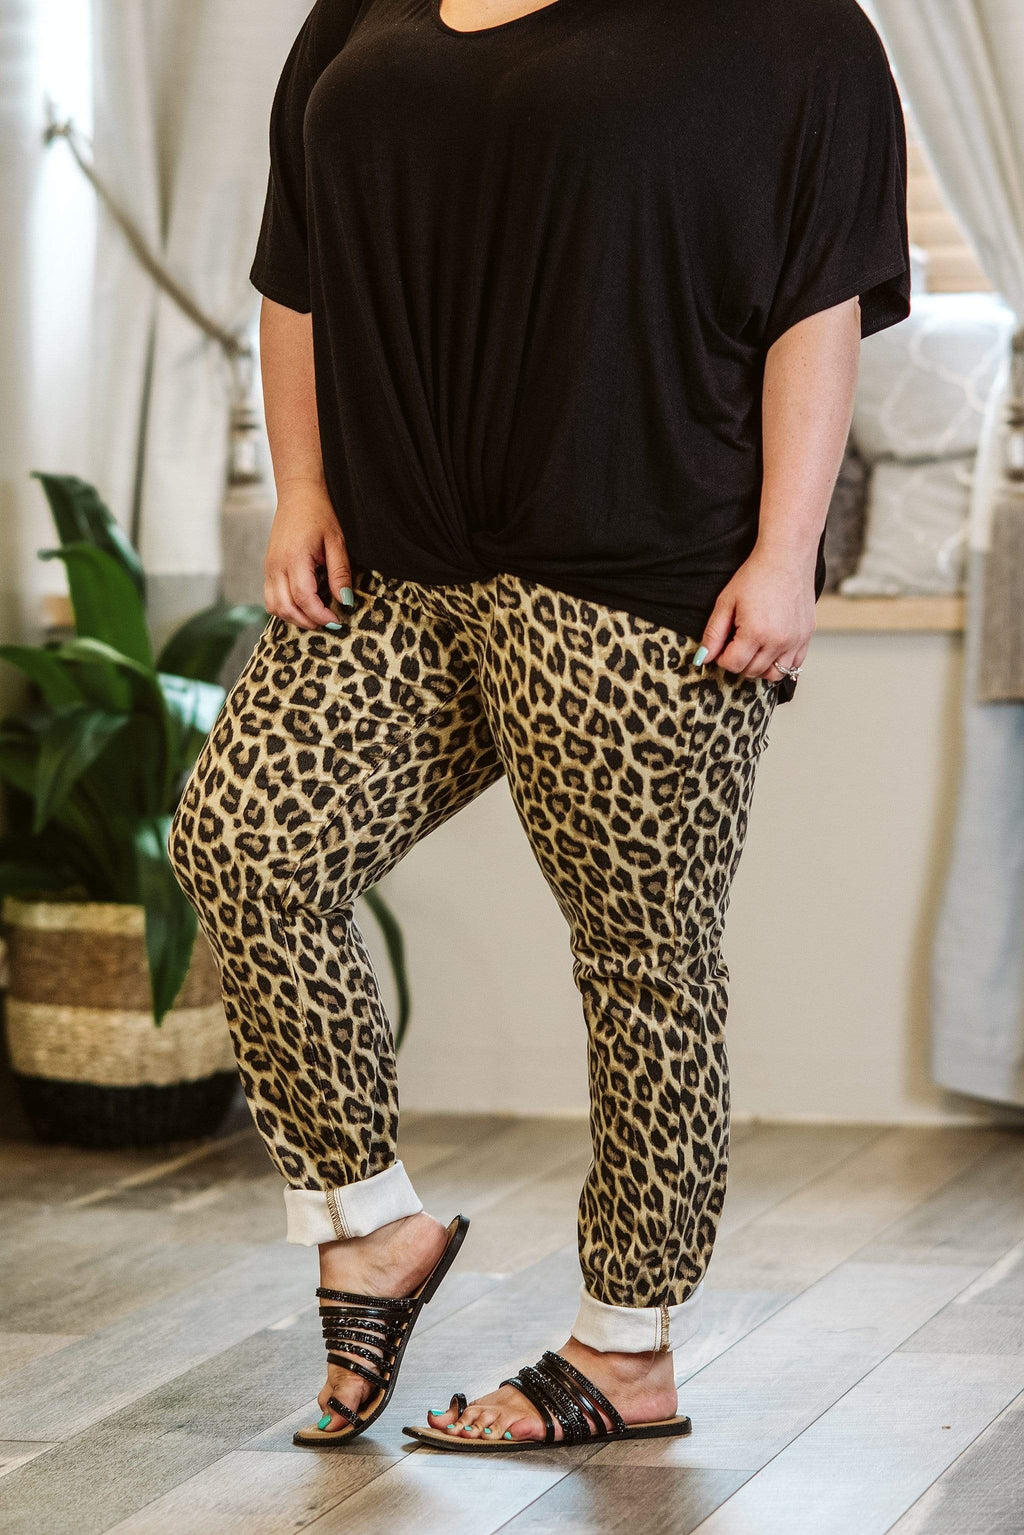 Glitzy Girlz Boutique Curvy Jazzy, Leopard, Plus Size Denim Jeans